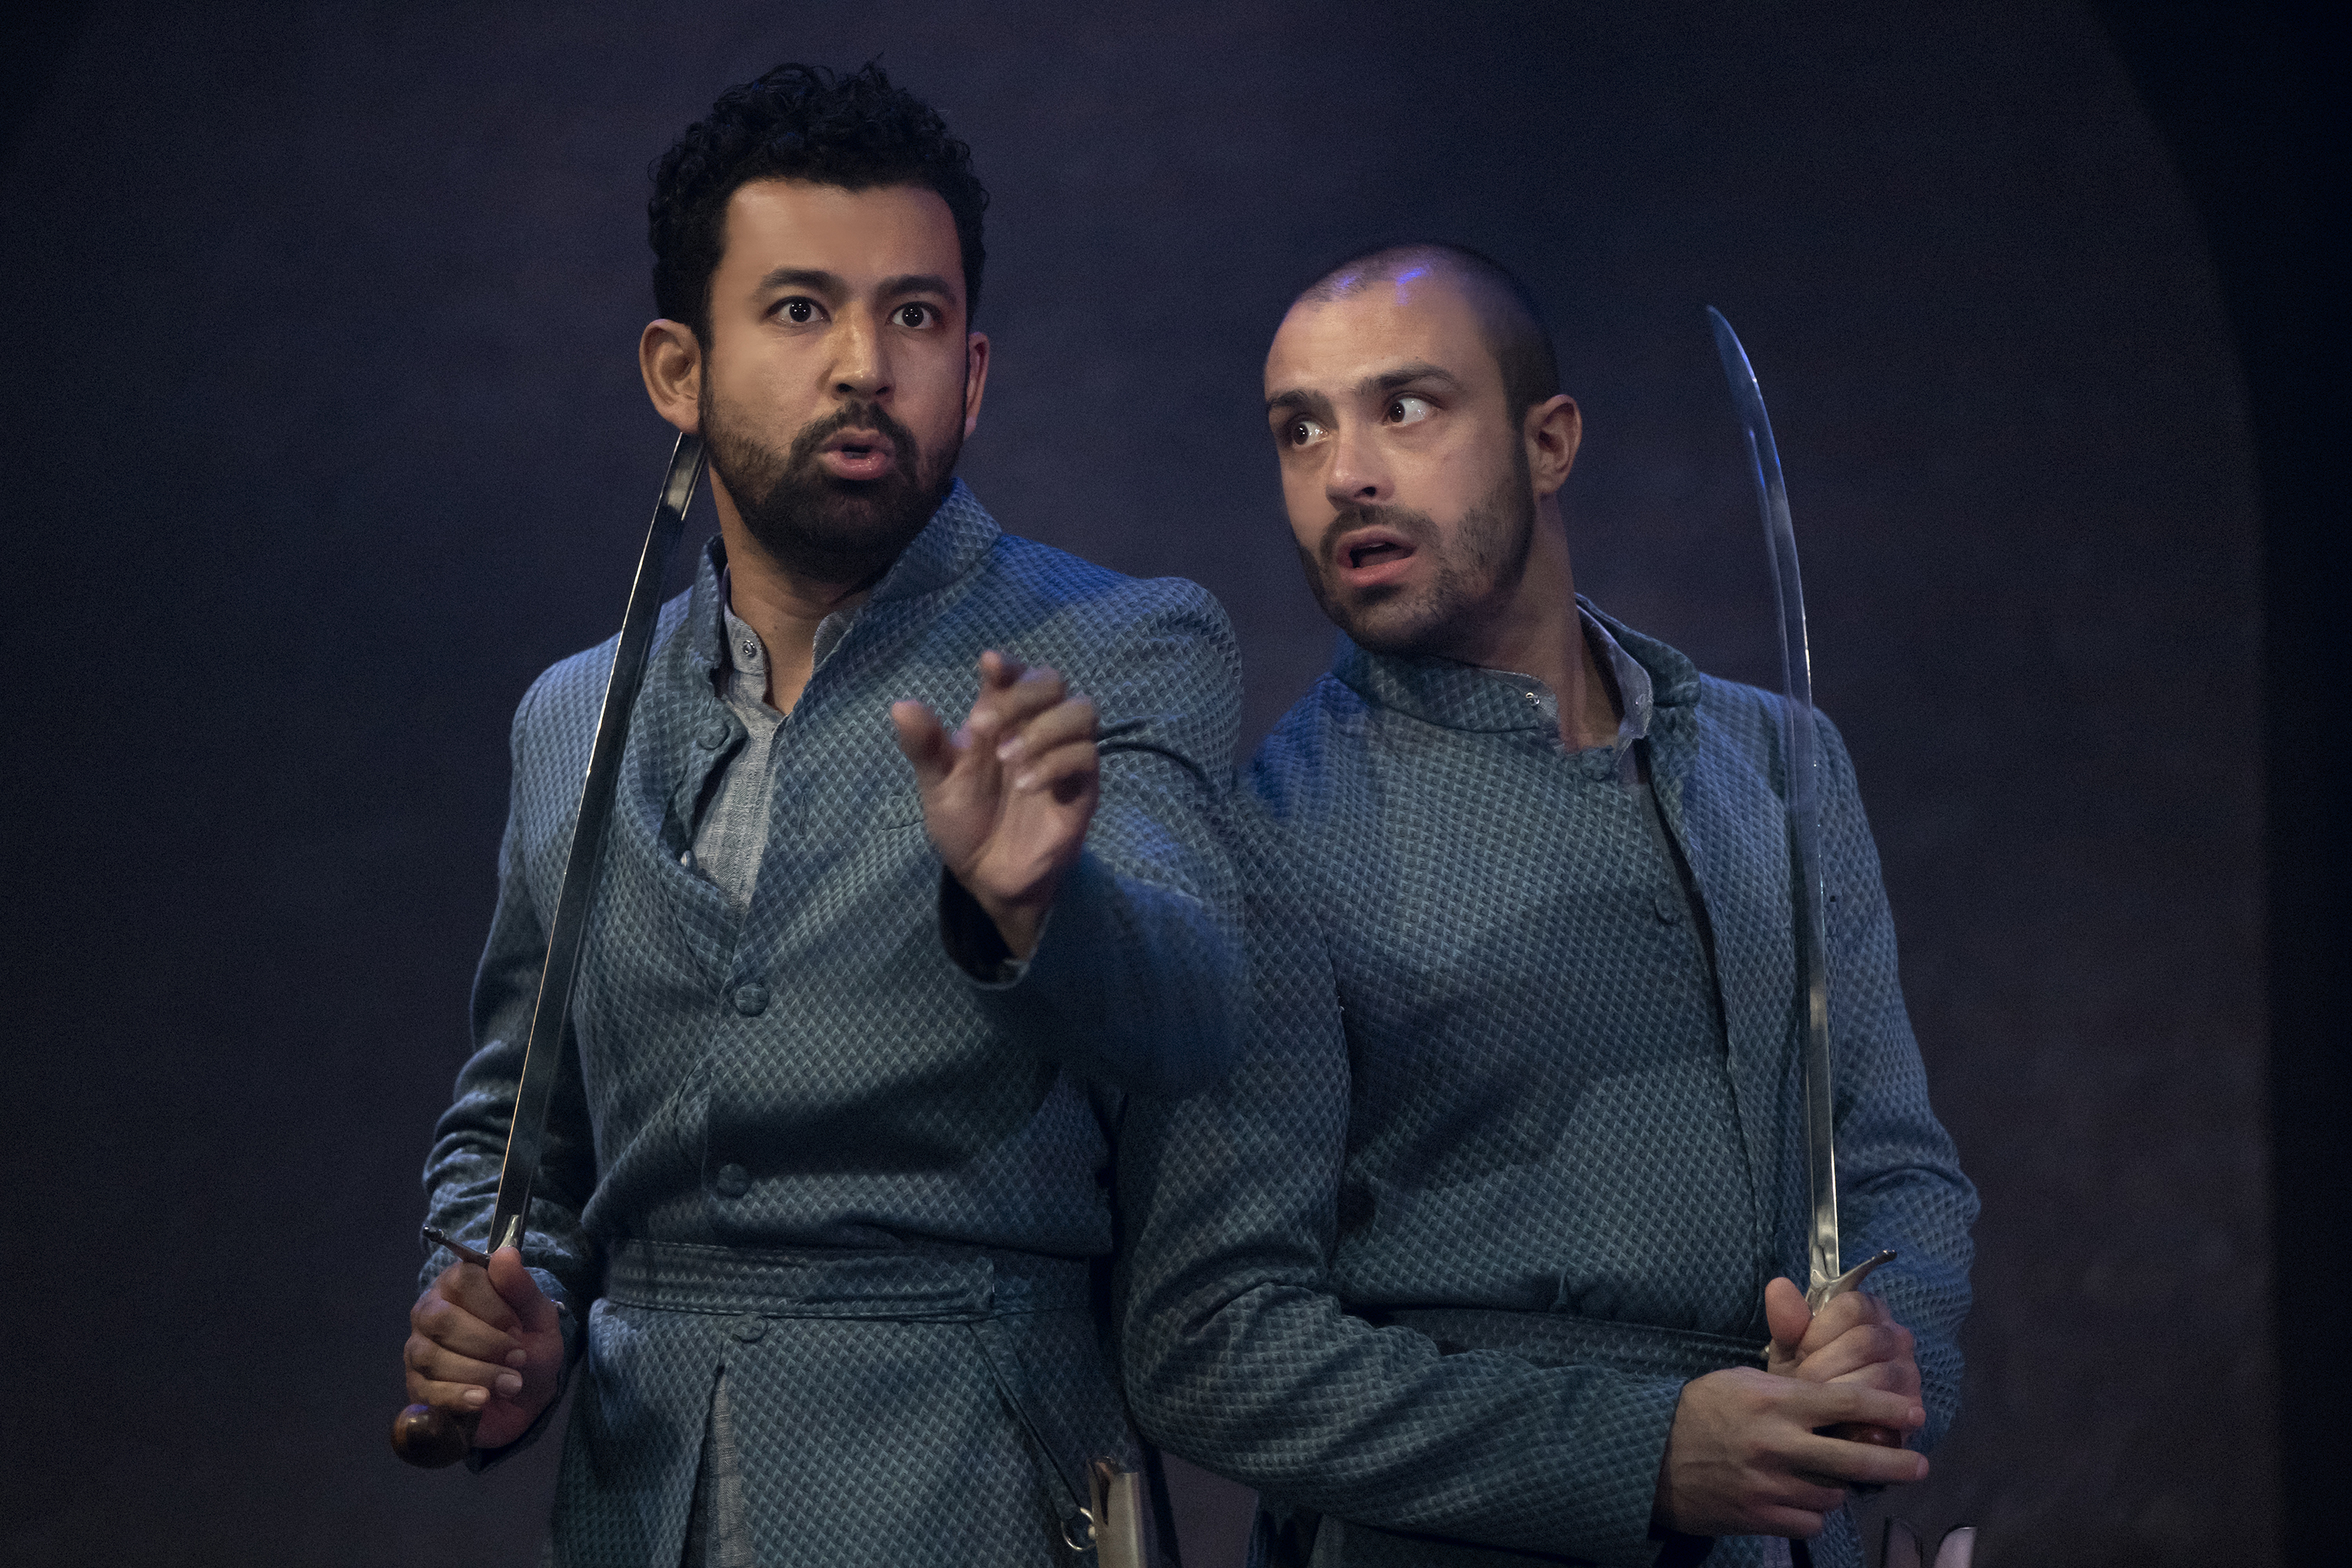 Ghafir Akbar plays the character of Humayun while Jay Saighal essays the role of Babar in the play 'Guards at the Taj'. Photo courtesy: Singapore Repertory Theatre